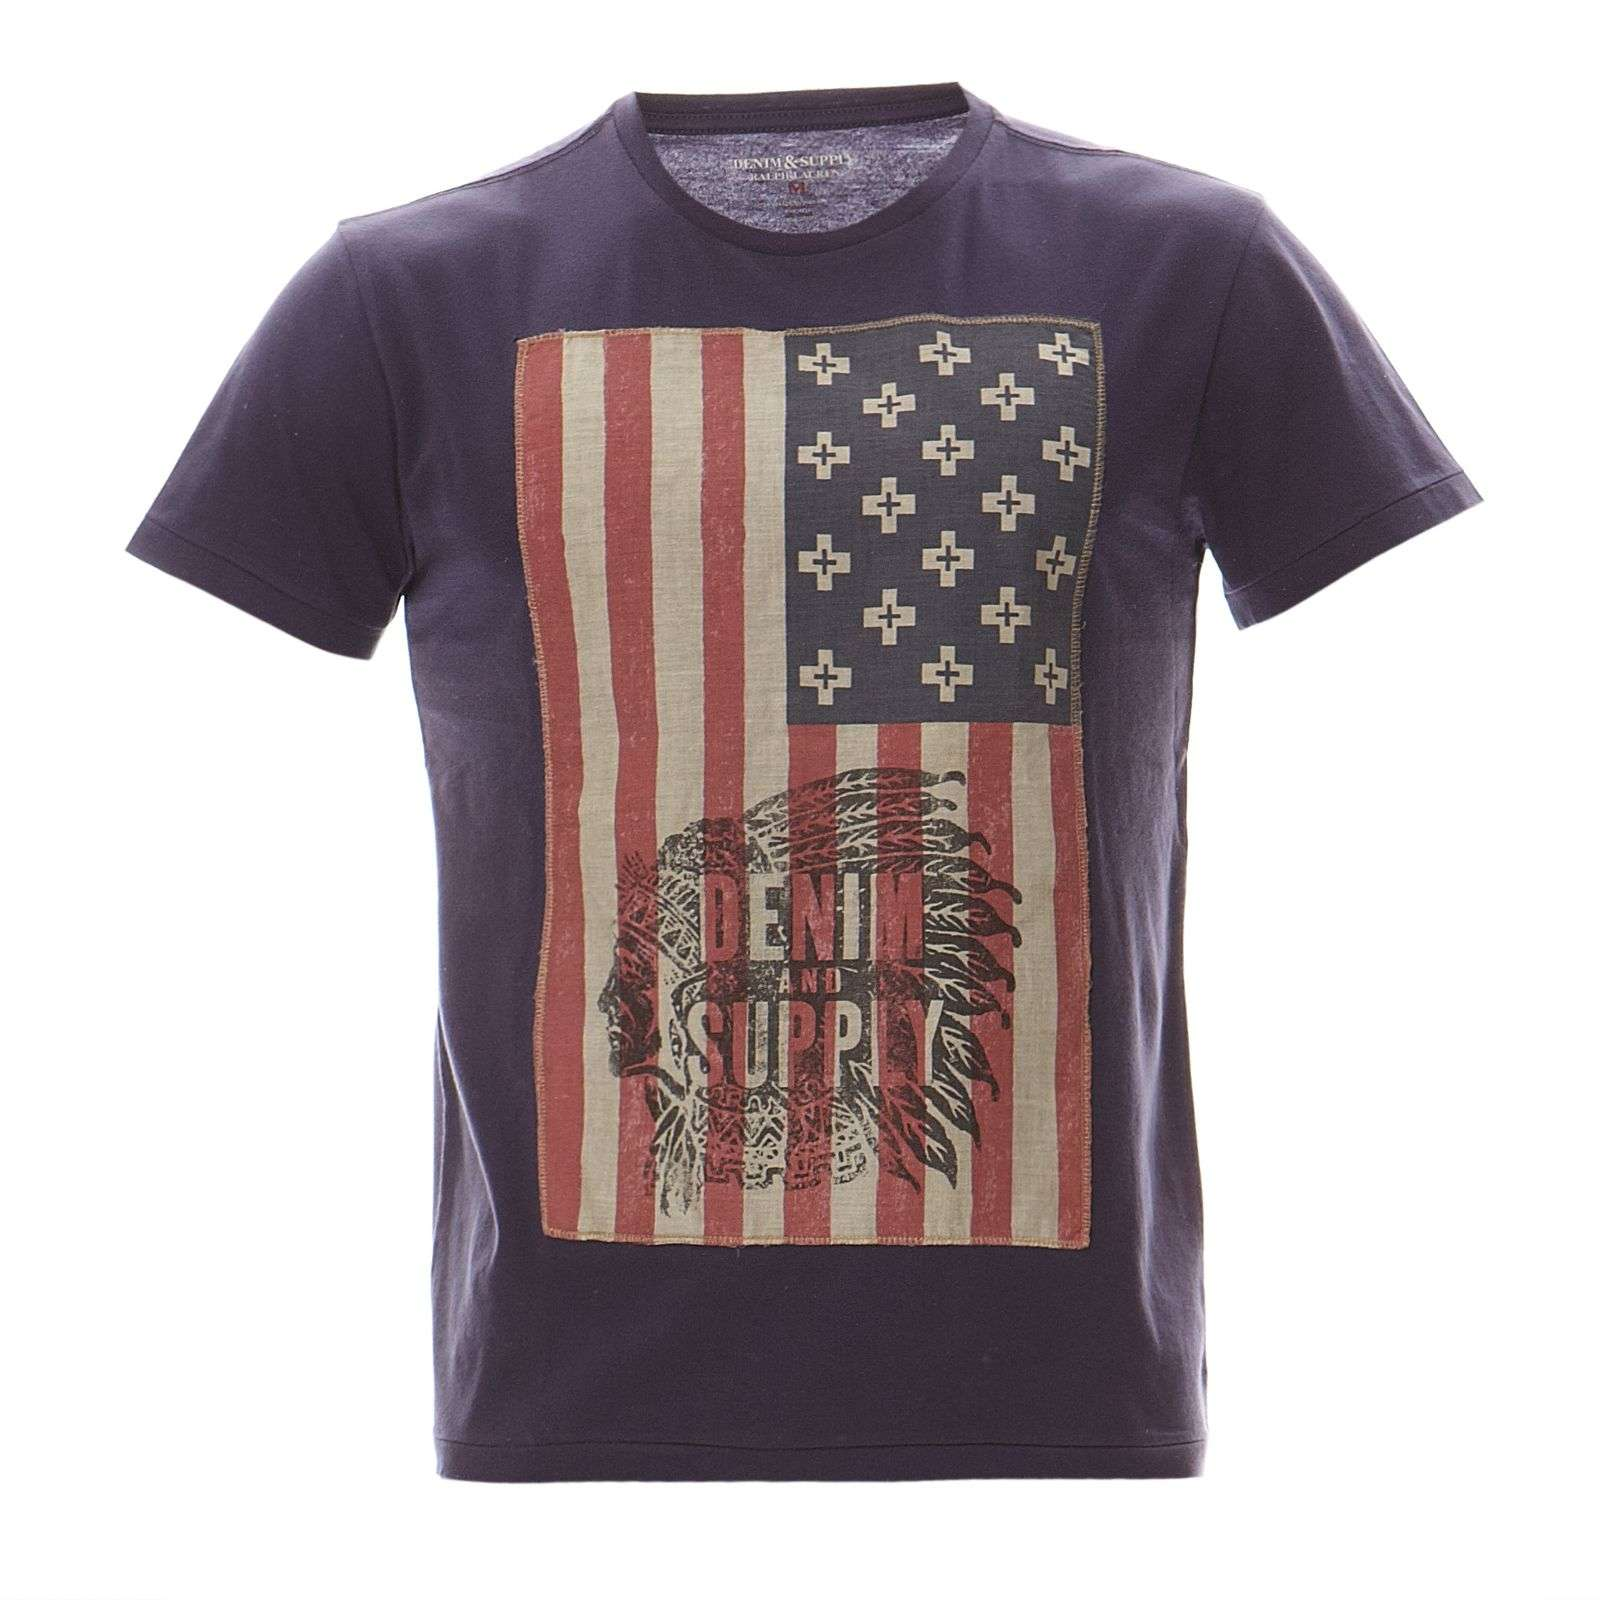 Denim  Supply Ralph Lauren T-shirt - bleu marine